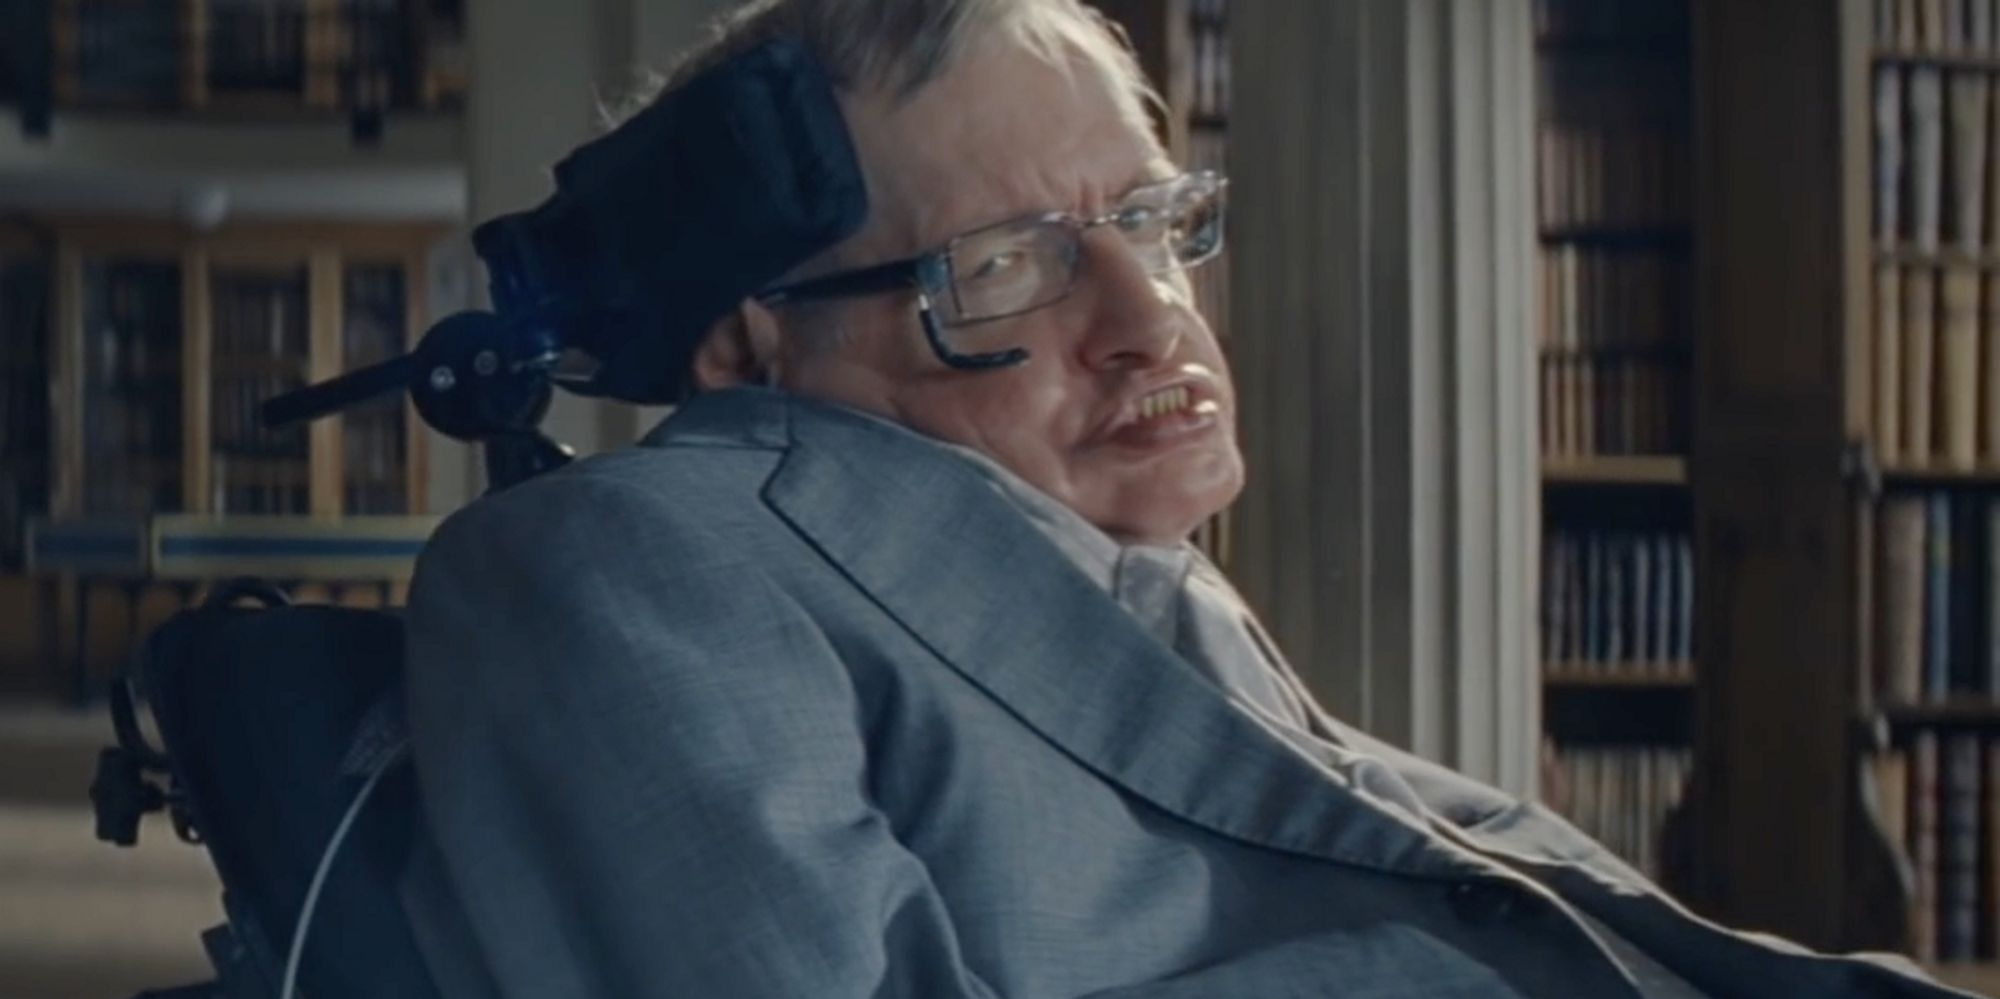 Stephen Hawking's PSA About Obesity Should Be Required Viewing